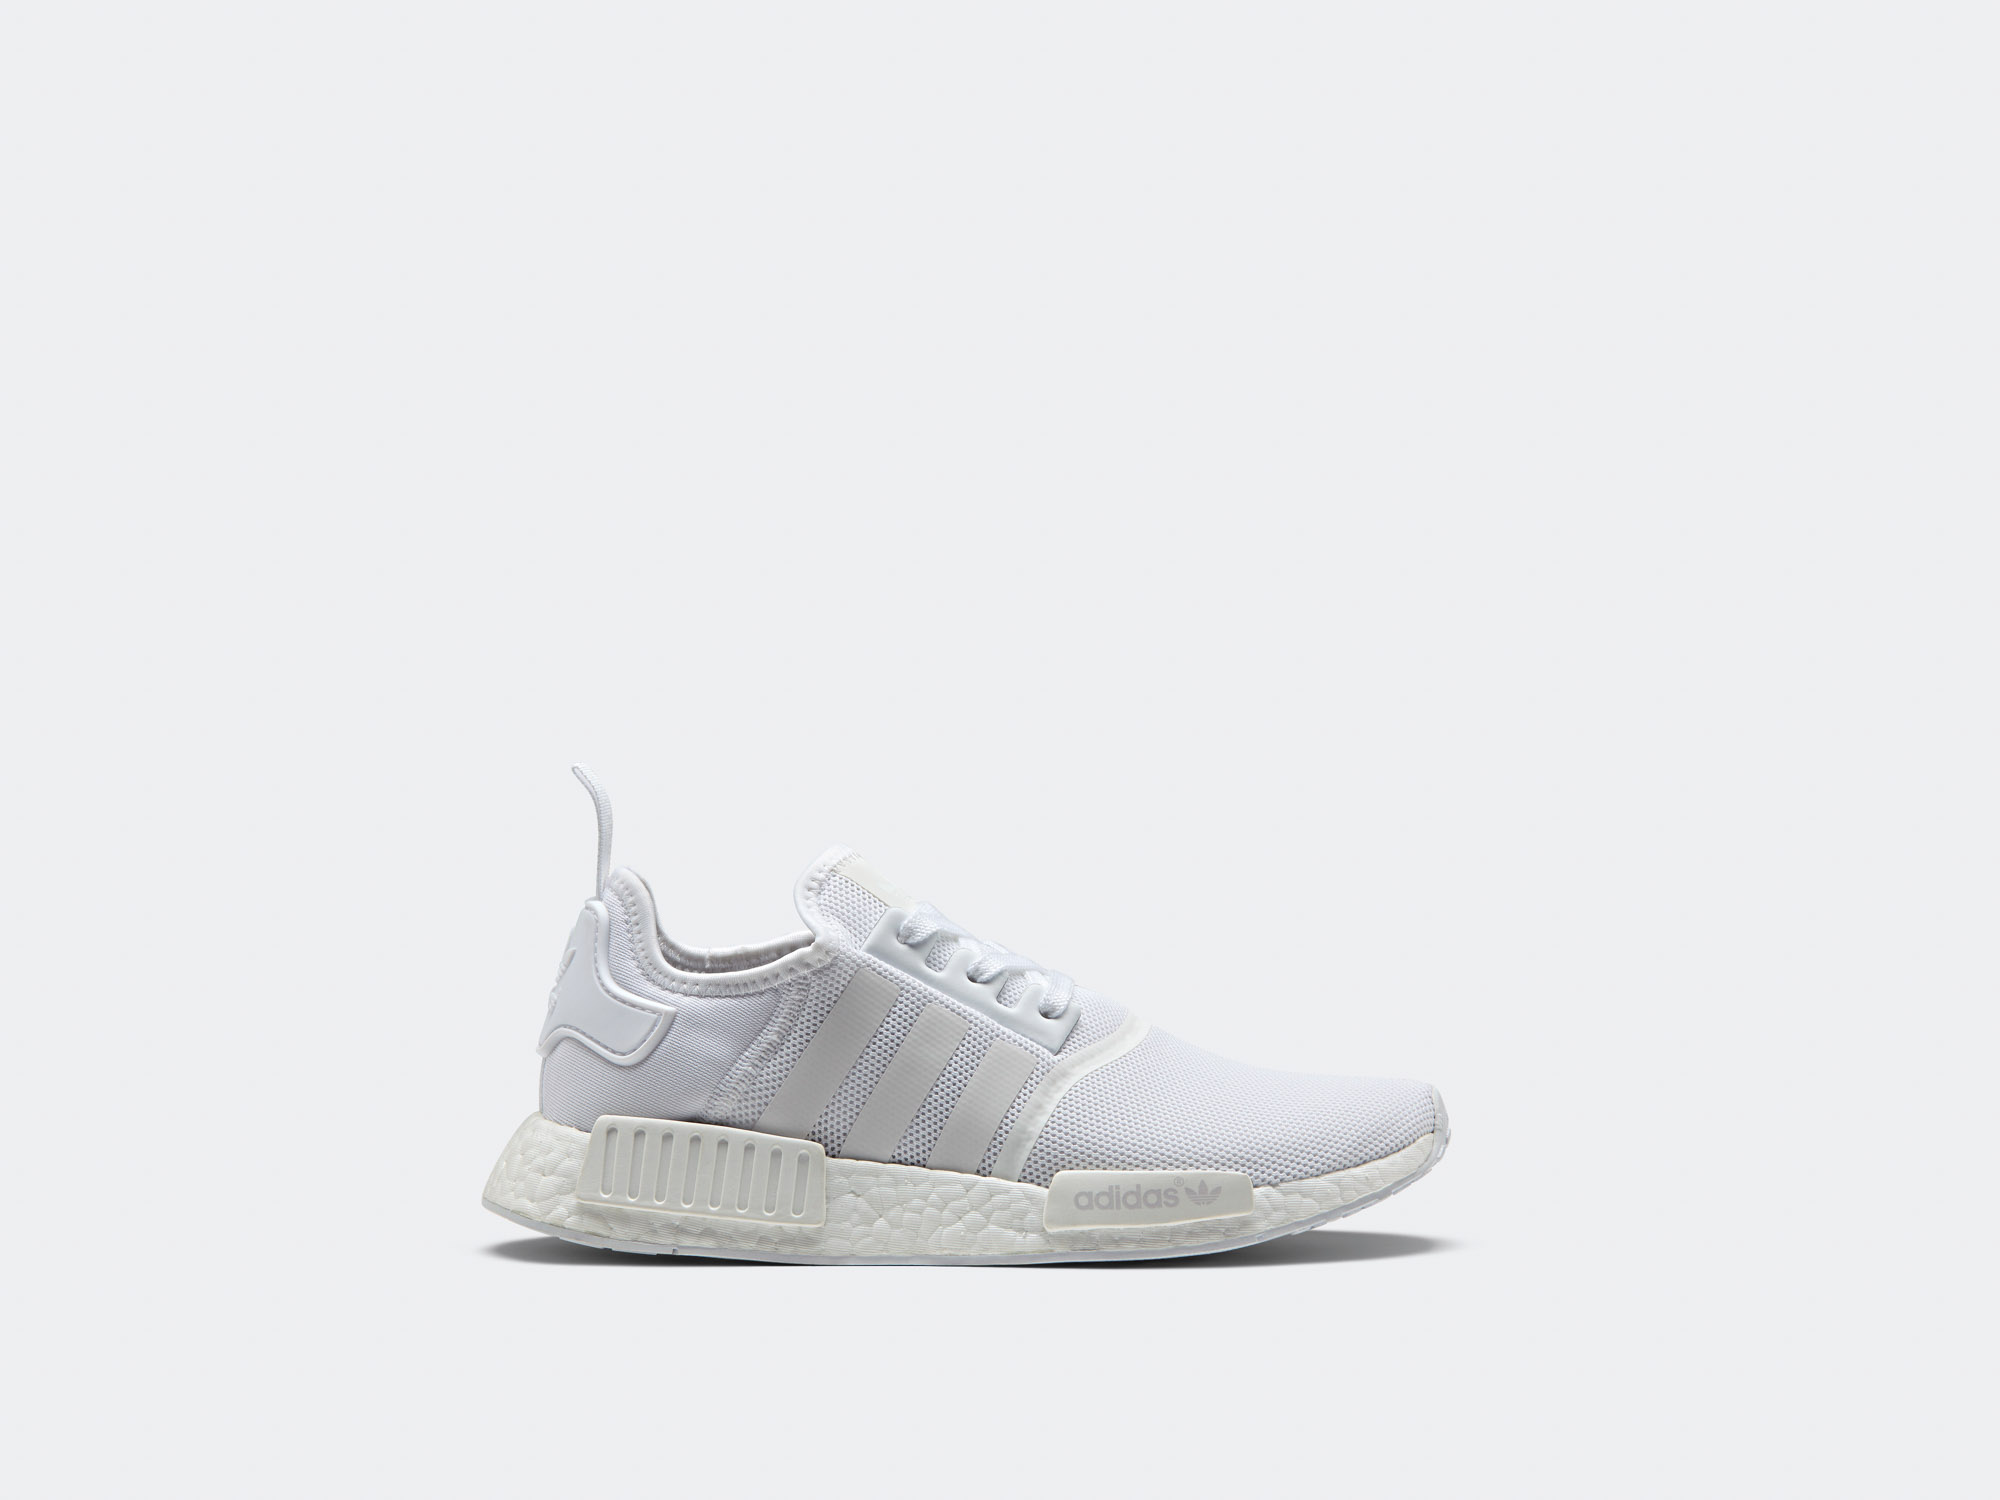 adidas NMD R1 Monochrome Pack 4